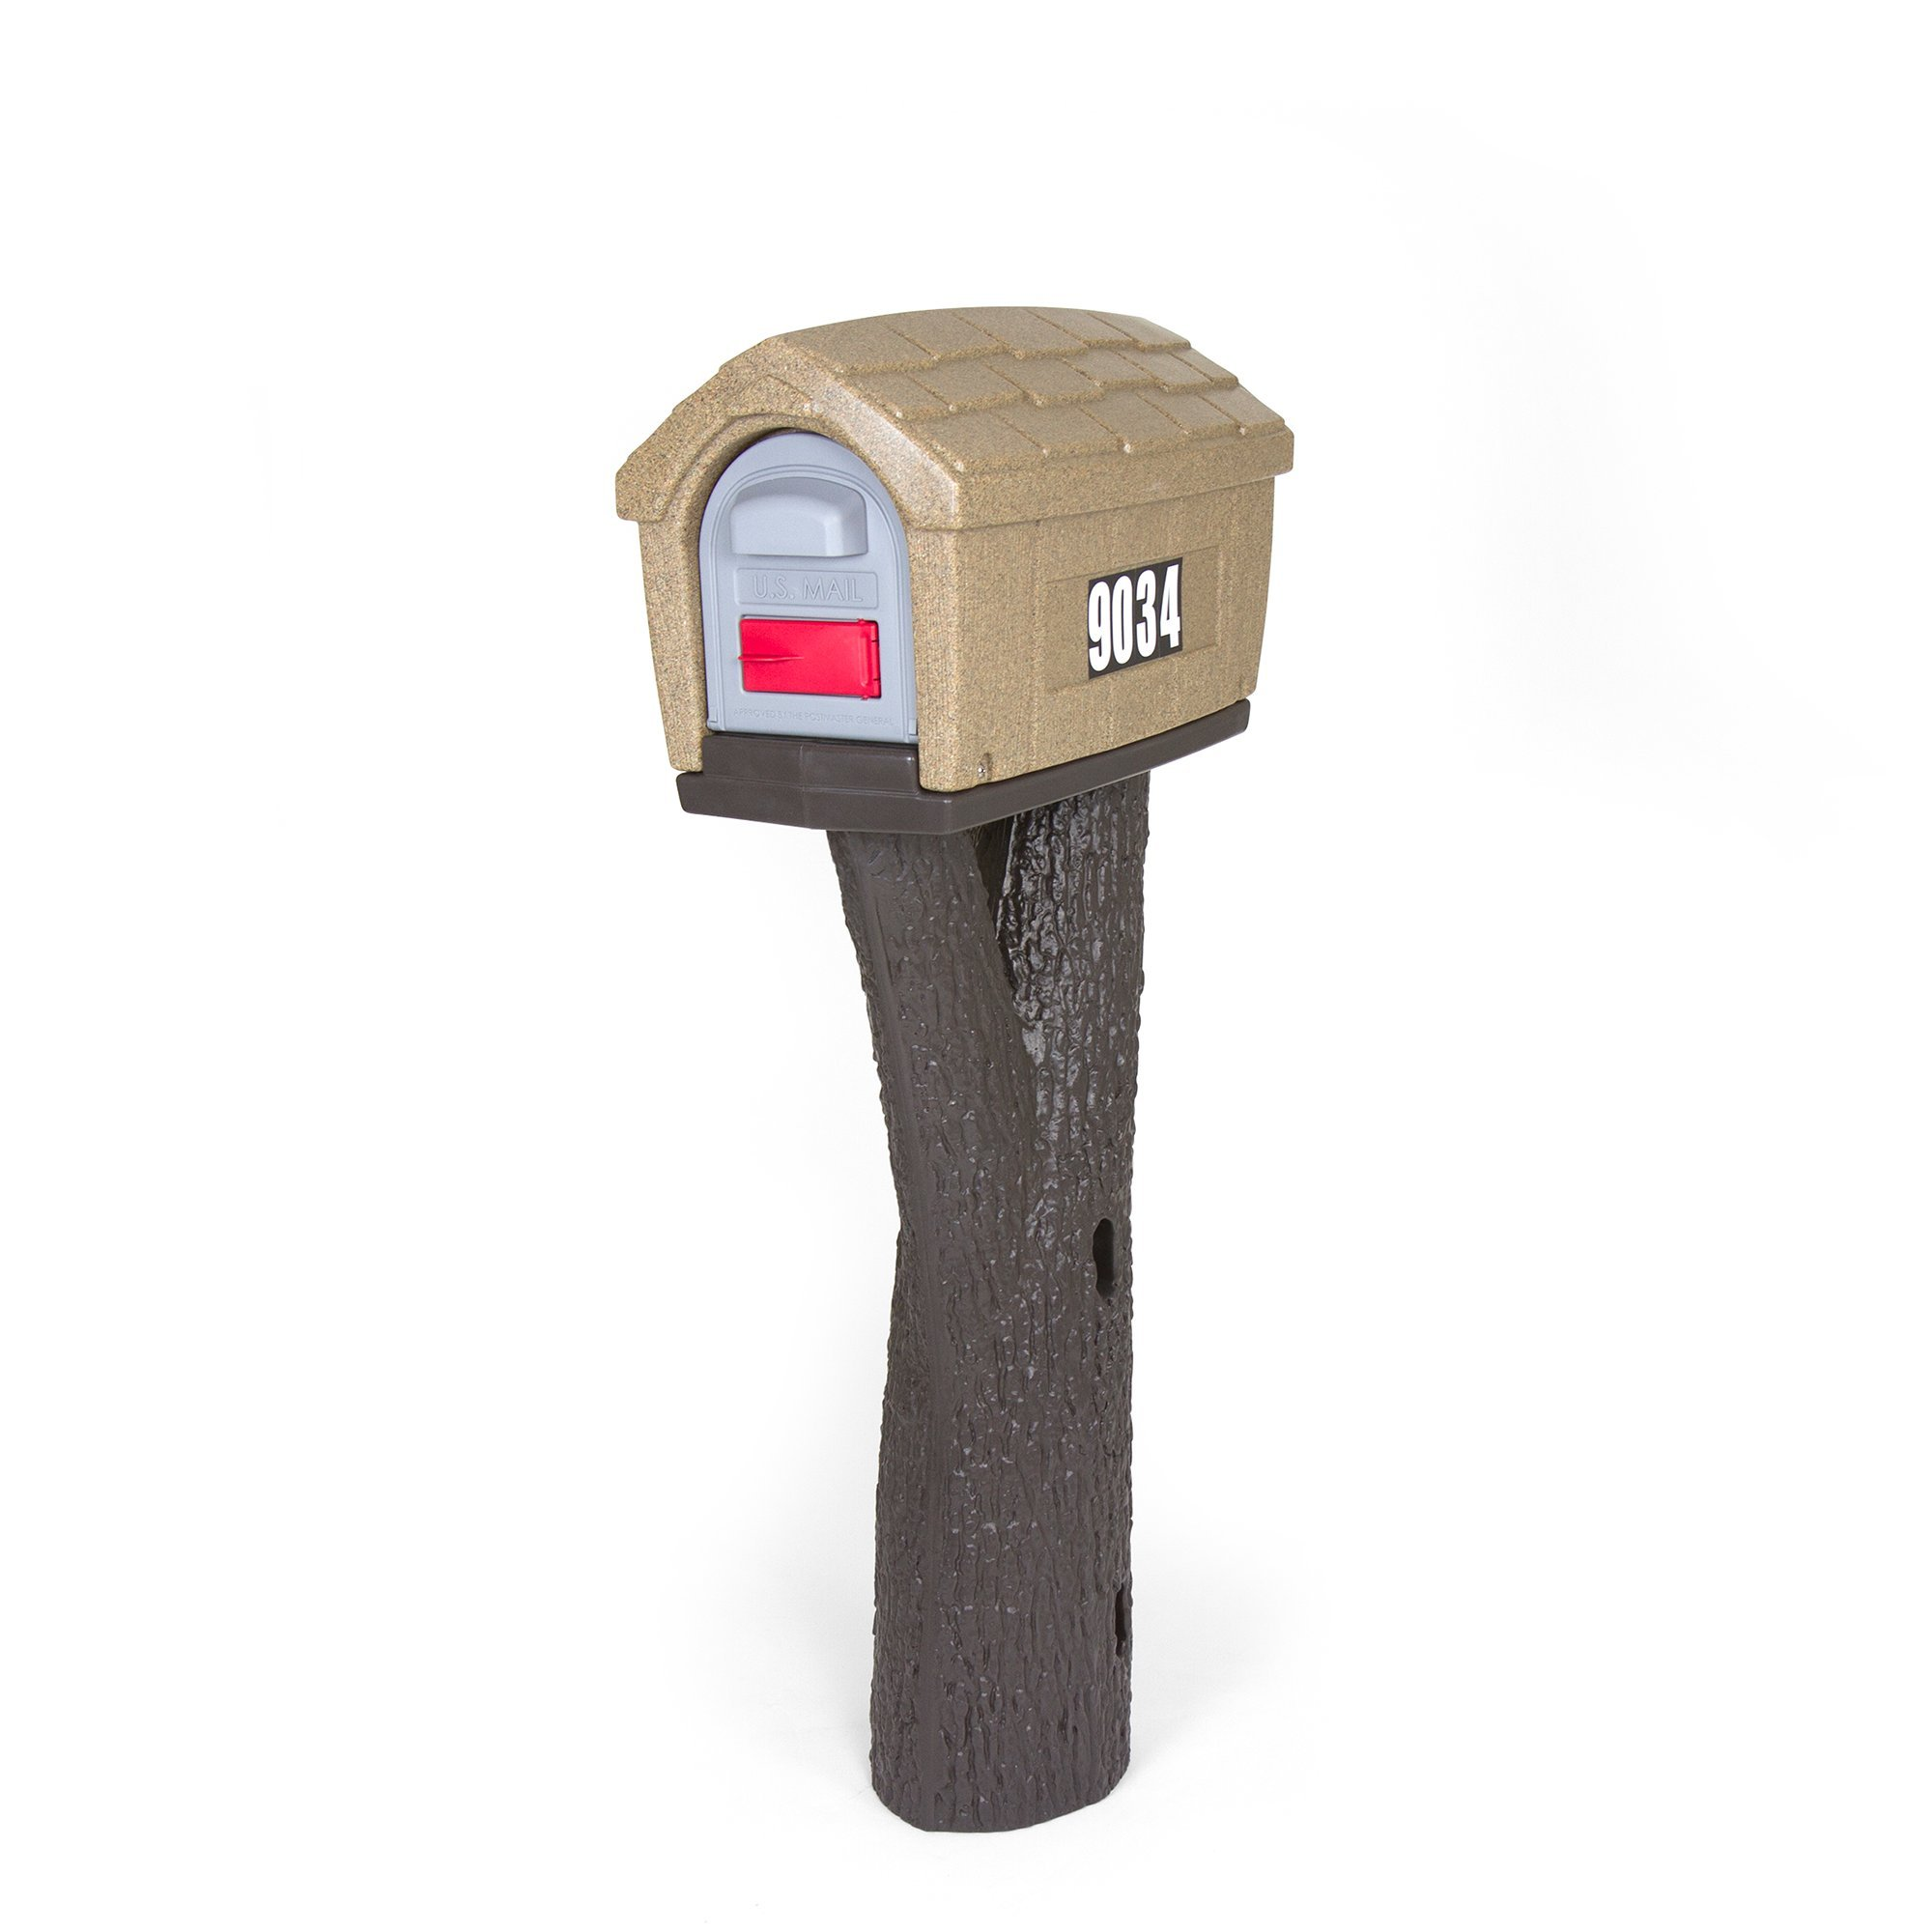 Simplay3 Rustic Home Plastic Post Mount Cabin Mailbox - Sandstone